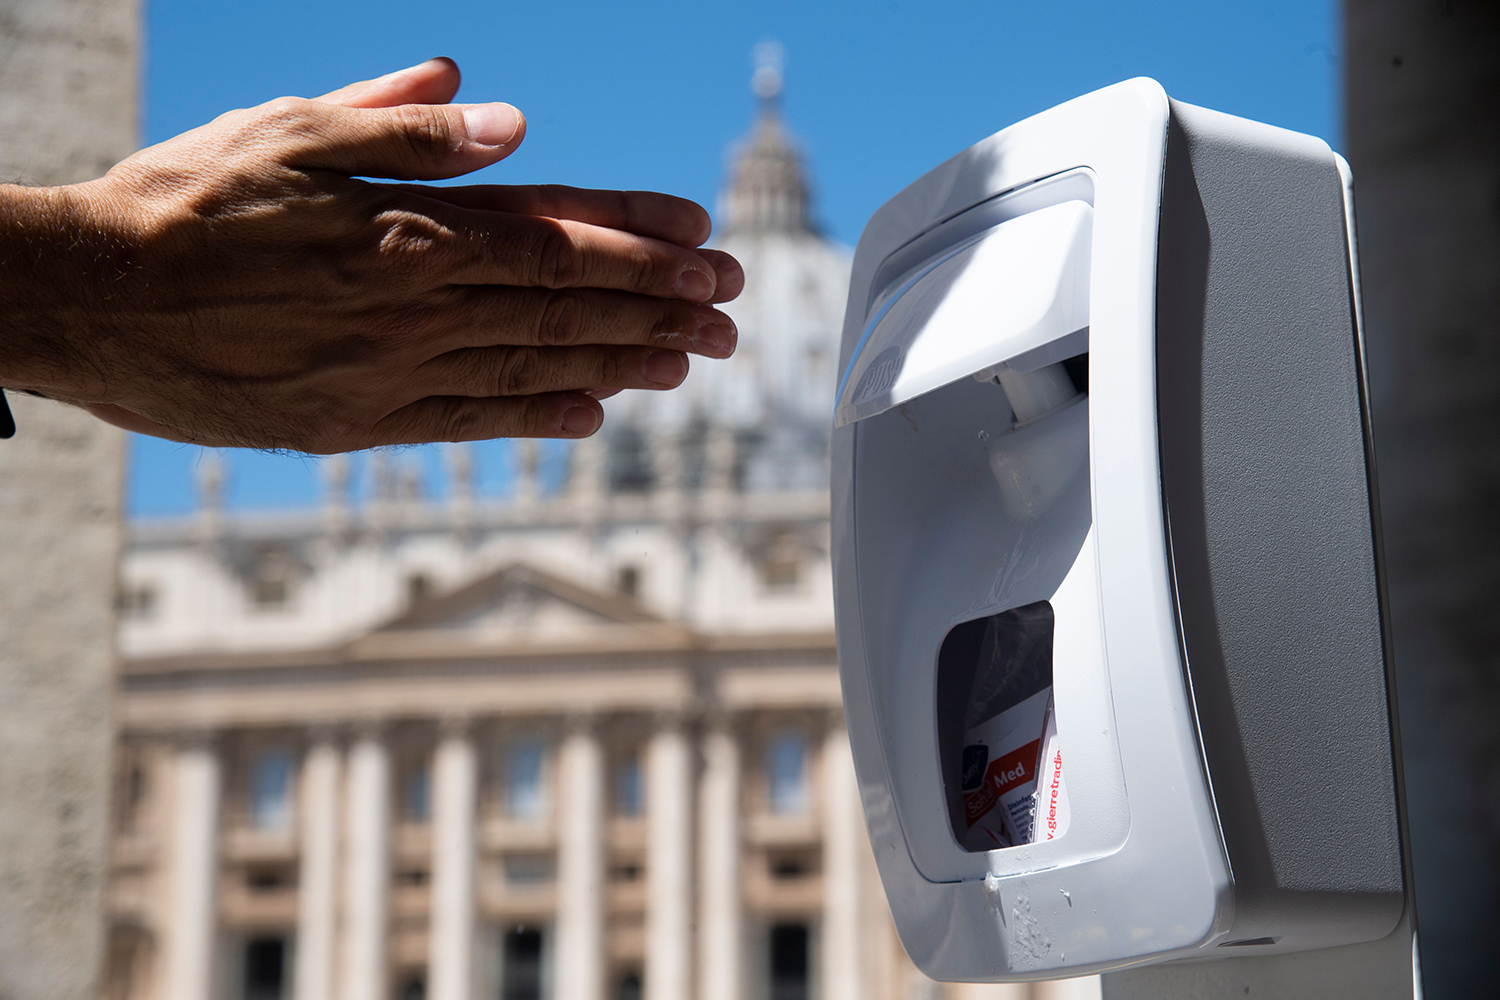 A visitor uses a hand sanitizer dispenser prior to passing through security controls at Saint Peter's Square at the Vatican to attend Pope Francis' Regina Coeli Prayer on May 31, the first public gathering there since the lockdown was imposed three months ago. TIZIANA FABI/AFP via Getty Images